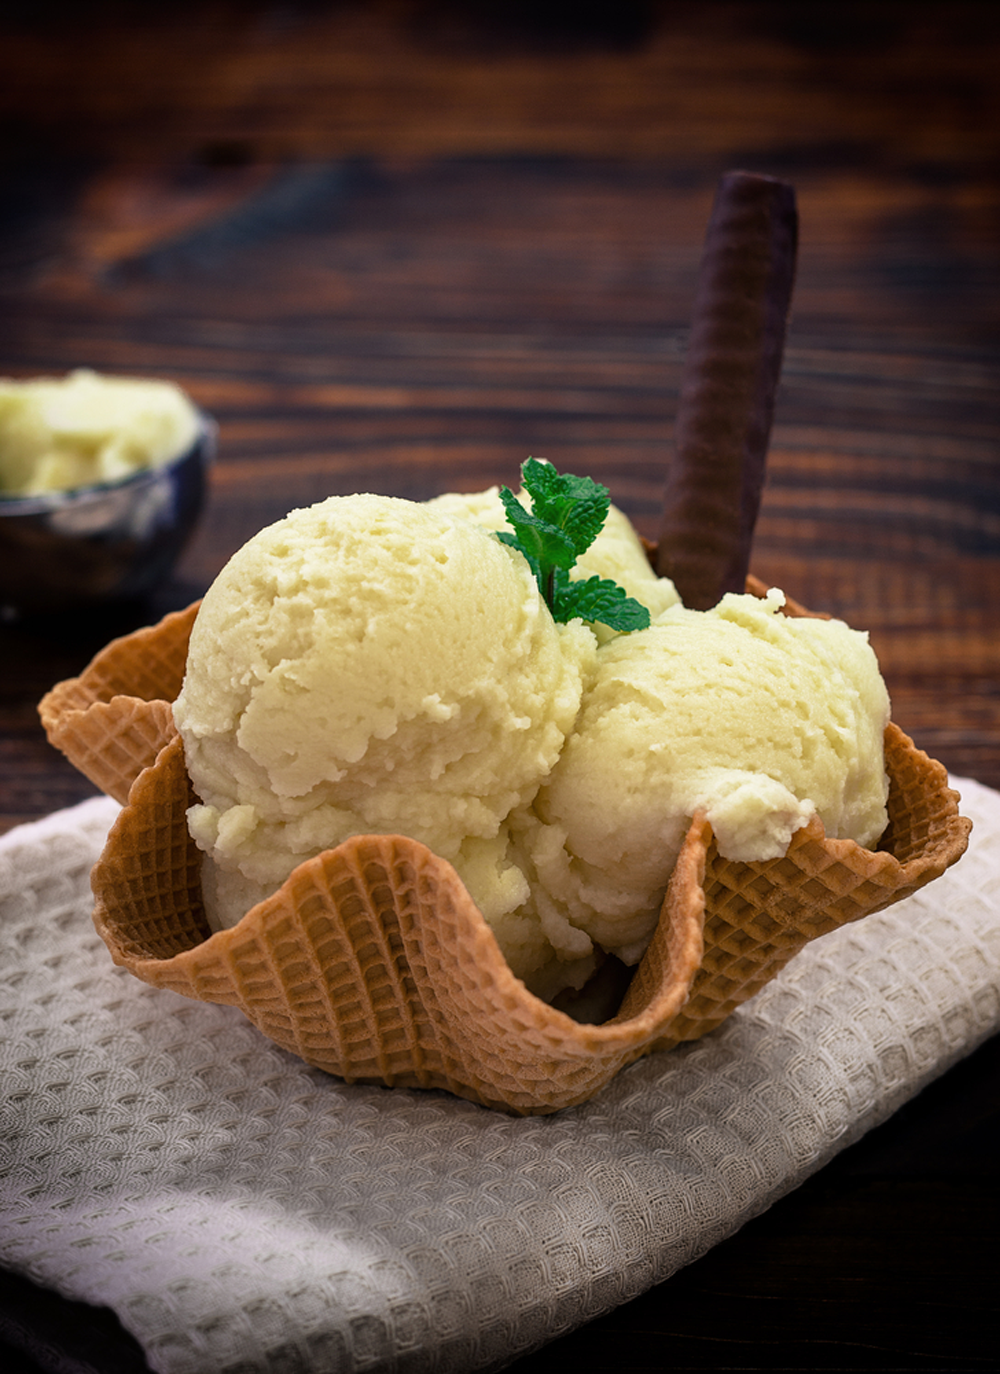 National Vanilla Ice Cream Day Watch Out For That Brain Freeze Ice Cream Ice Cream Day Ice Cream Flavors